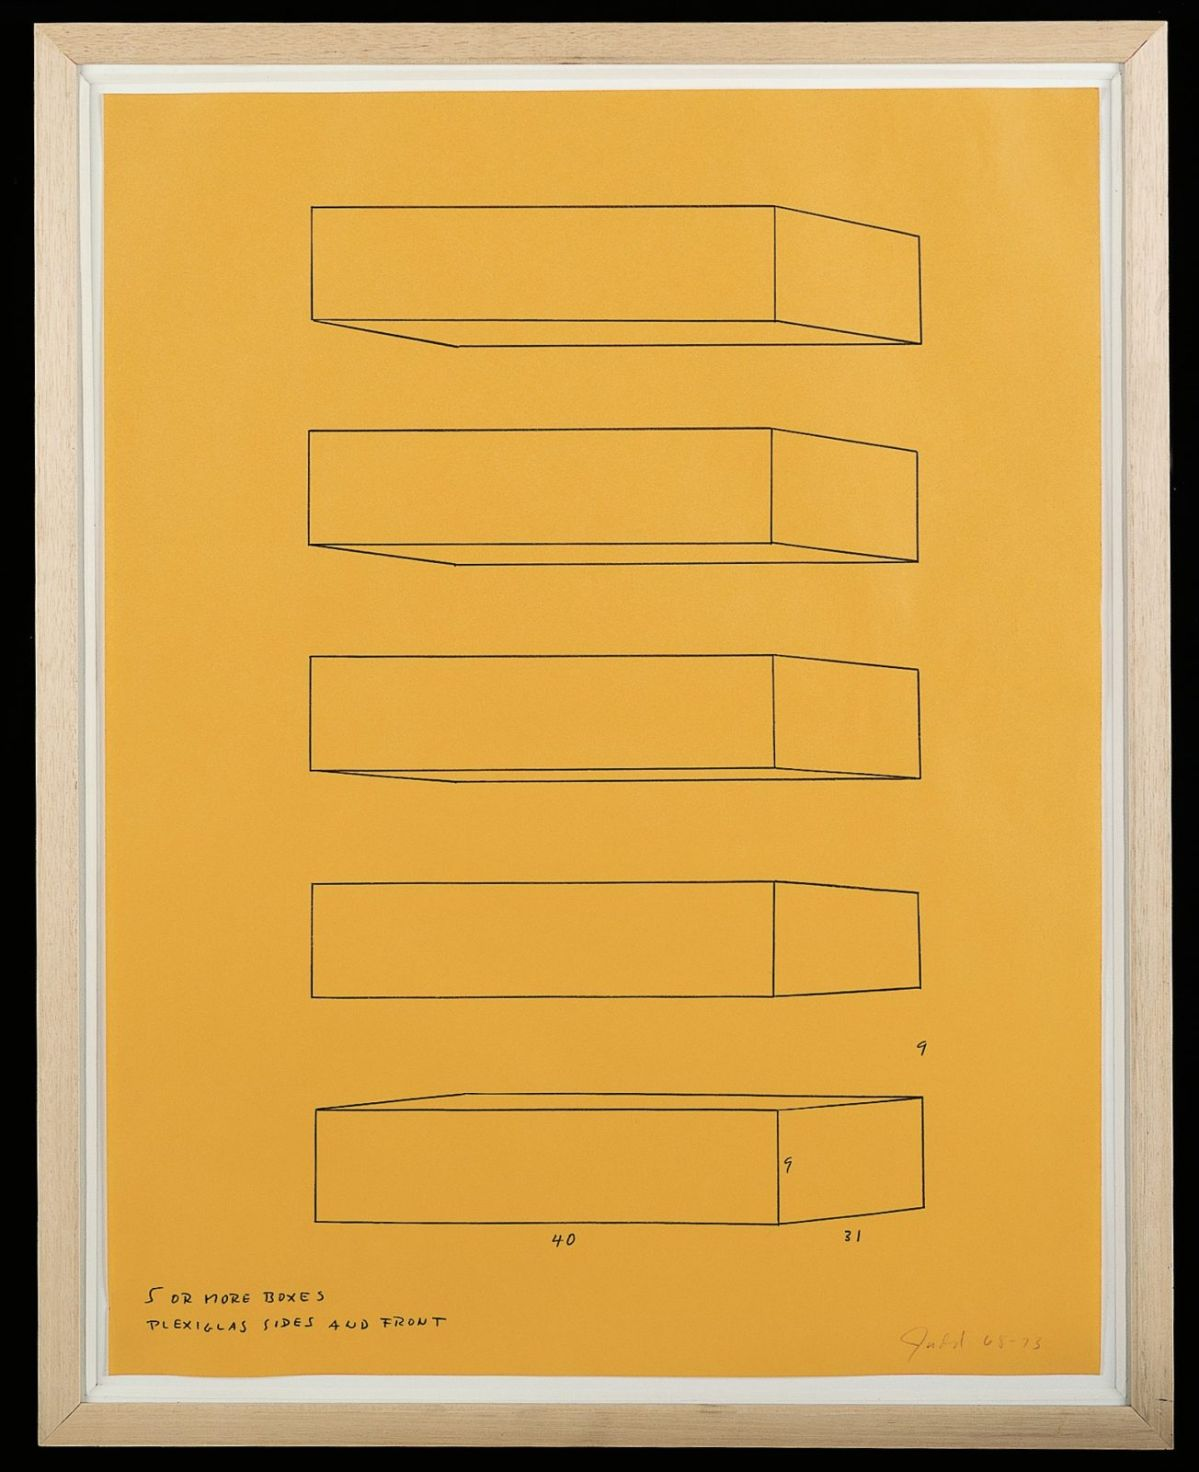 Donald Judd, 5 or more boxes, 1968 - 1973